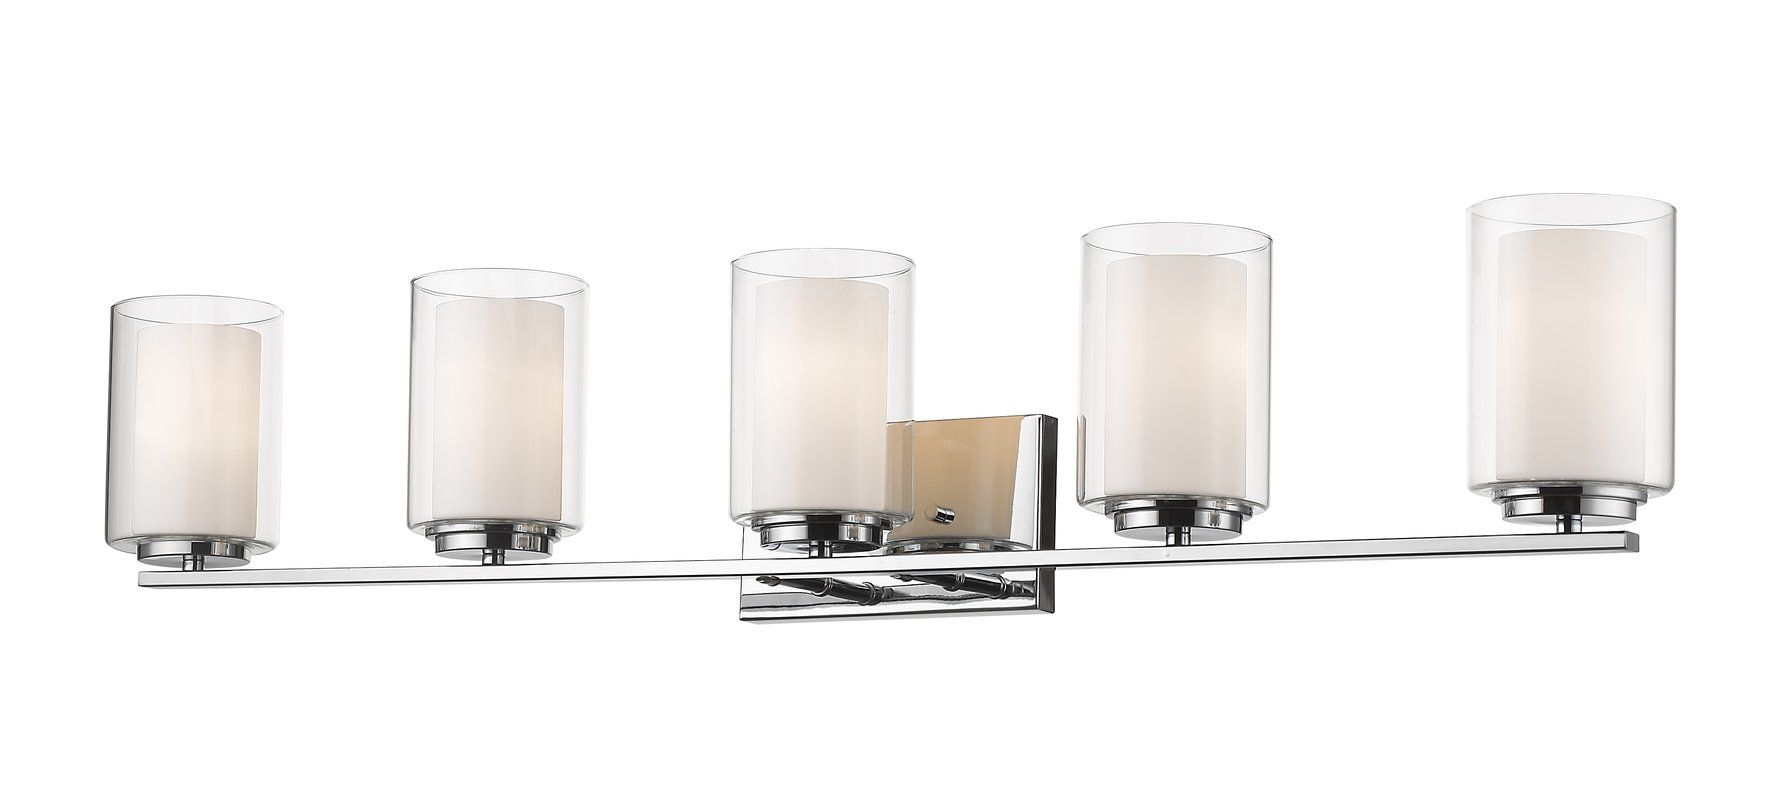 Cheyne 5 light vanity light